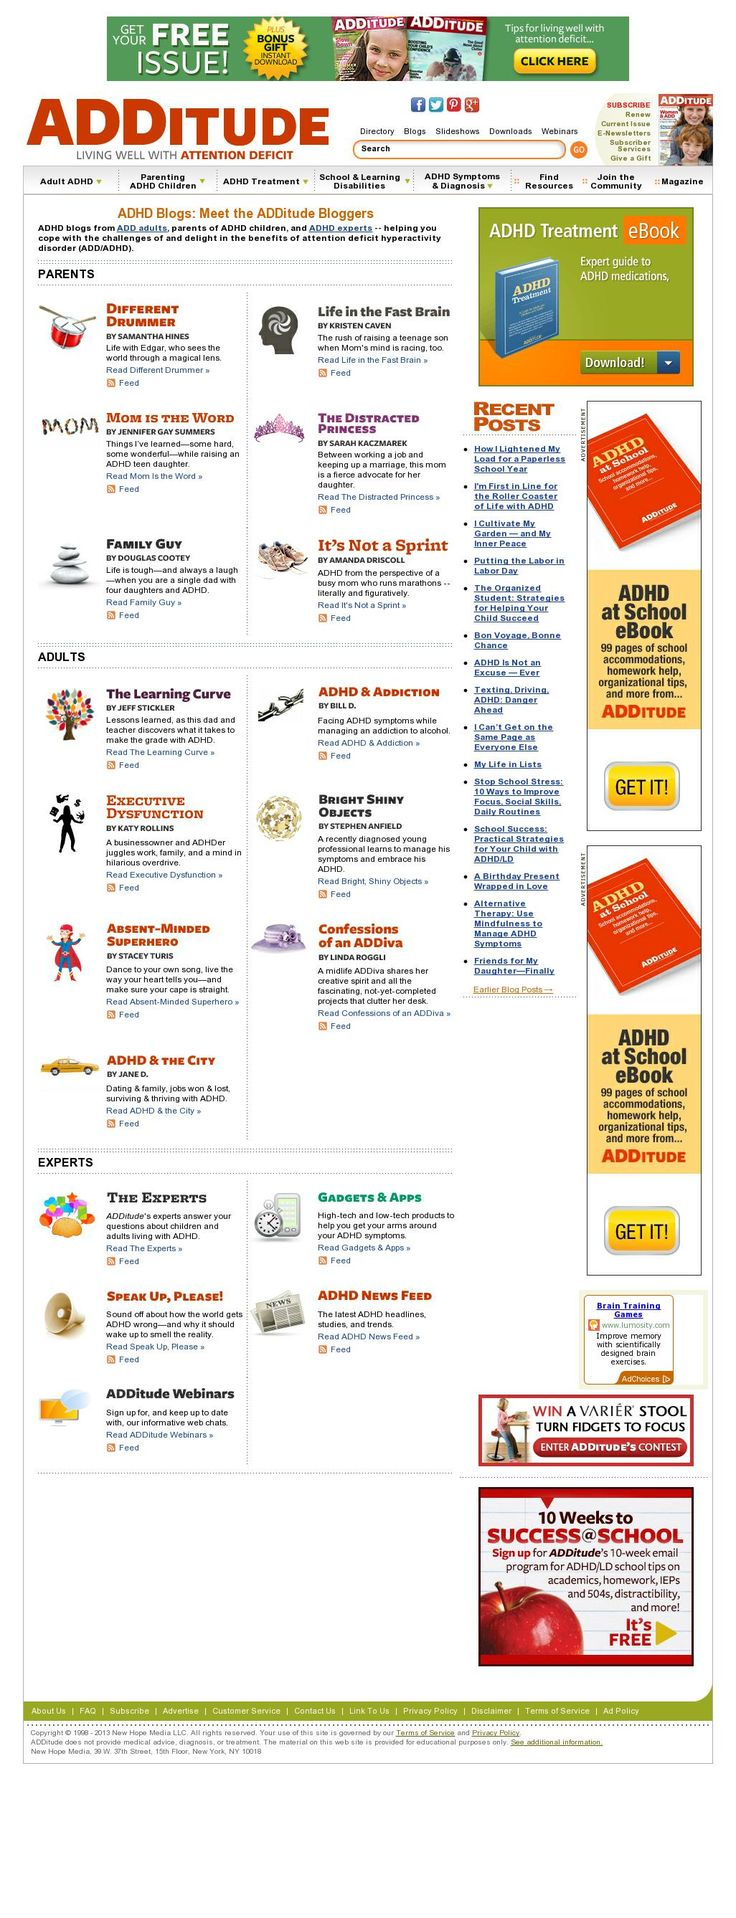 Meet the ADDitude Bloggers - ADHD blogs from ADD adults, parents of ADHD children, and ADHD experts. Find your favorites to follow. (Screenshot courtesy of http://pinstamatic.com)